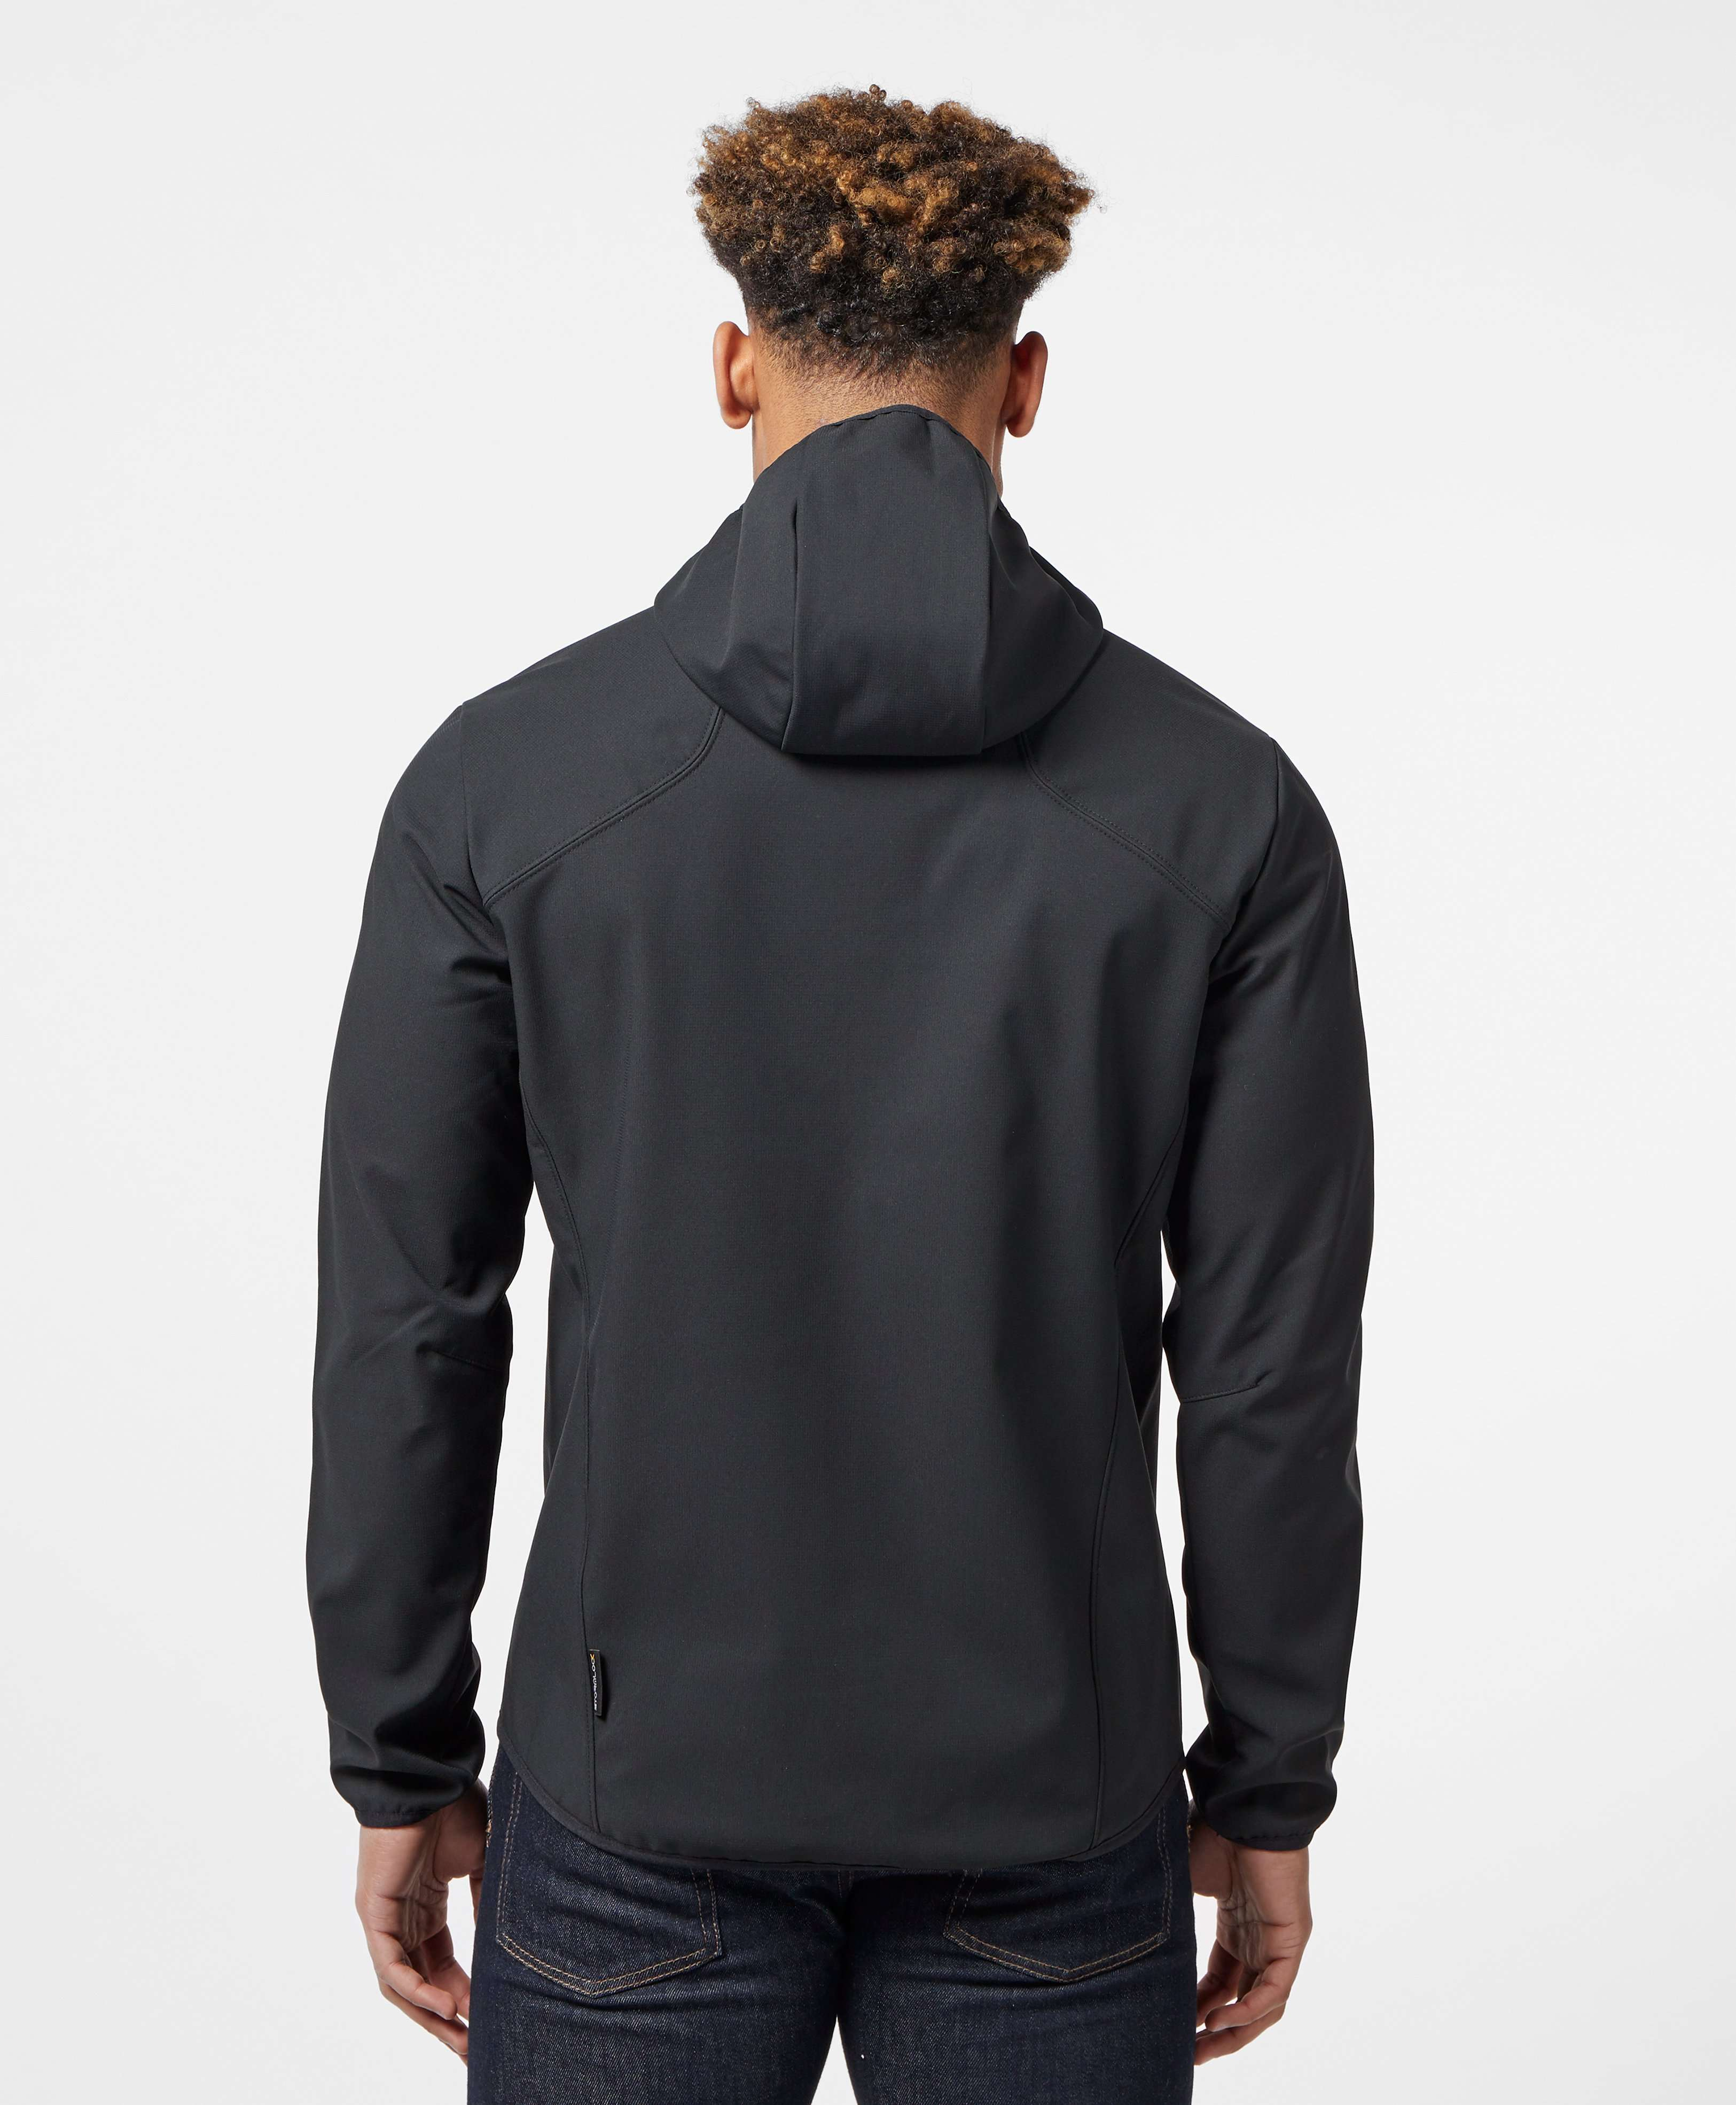 Jack Wolfskin Northern Point Softshell Jacket